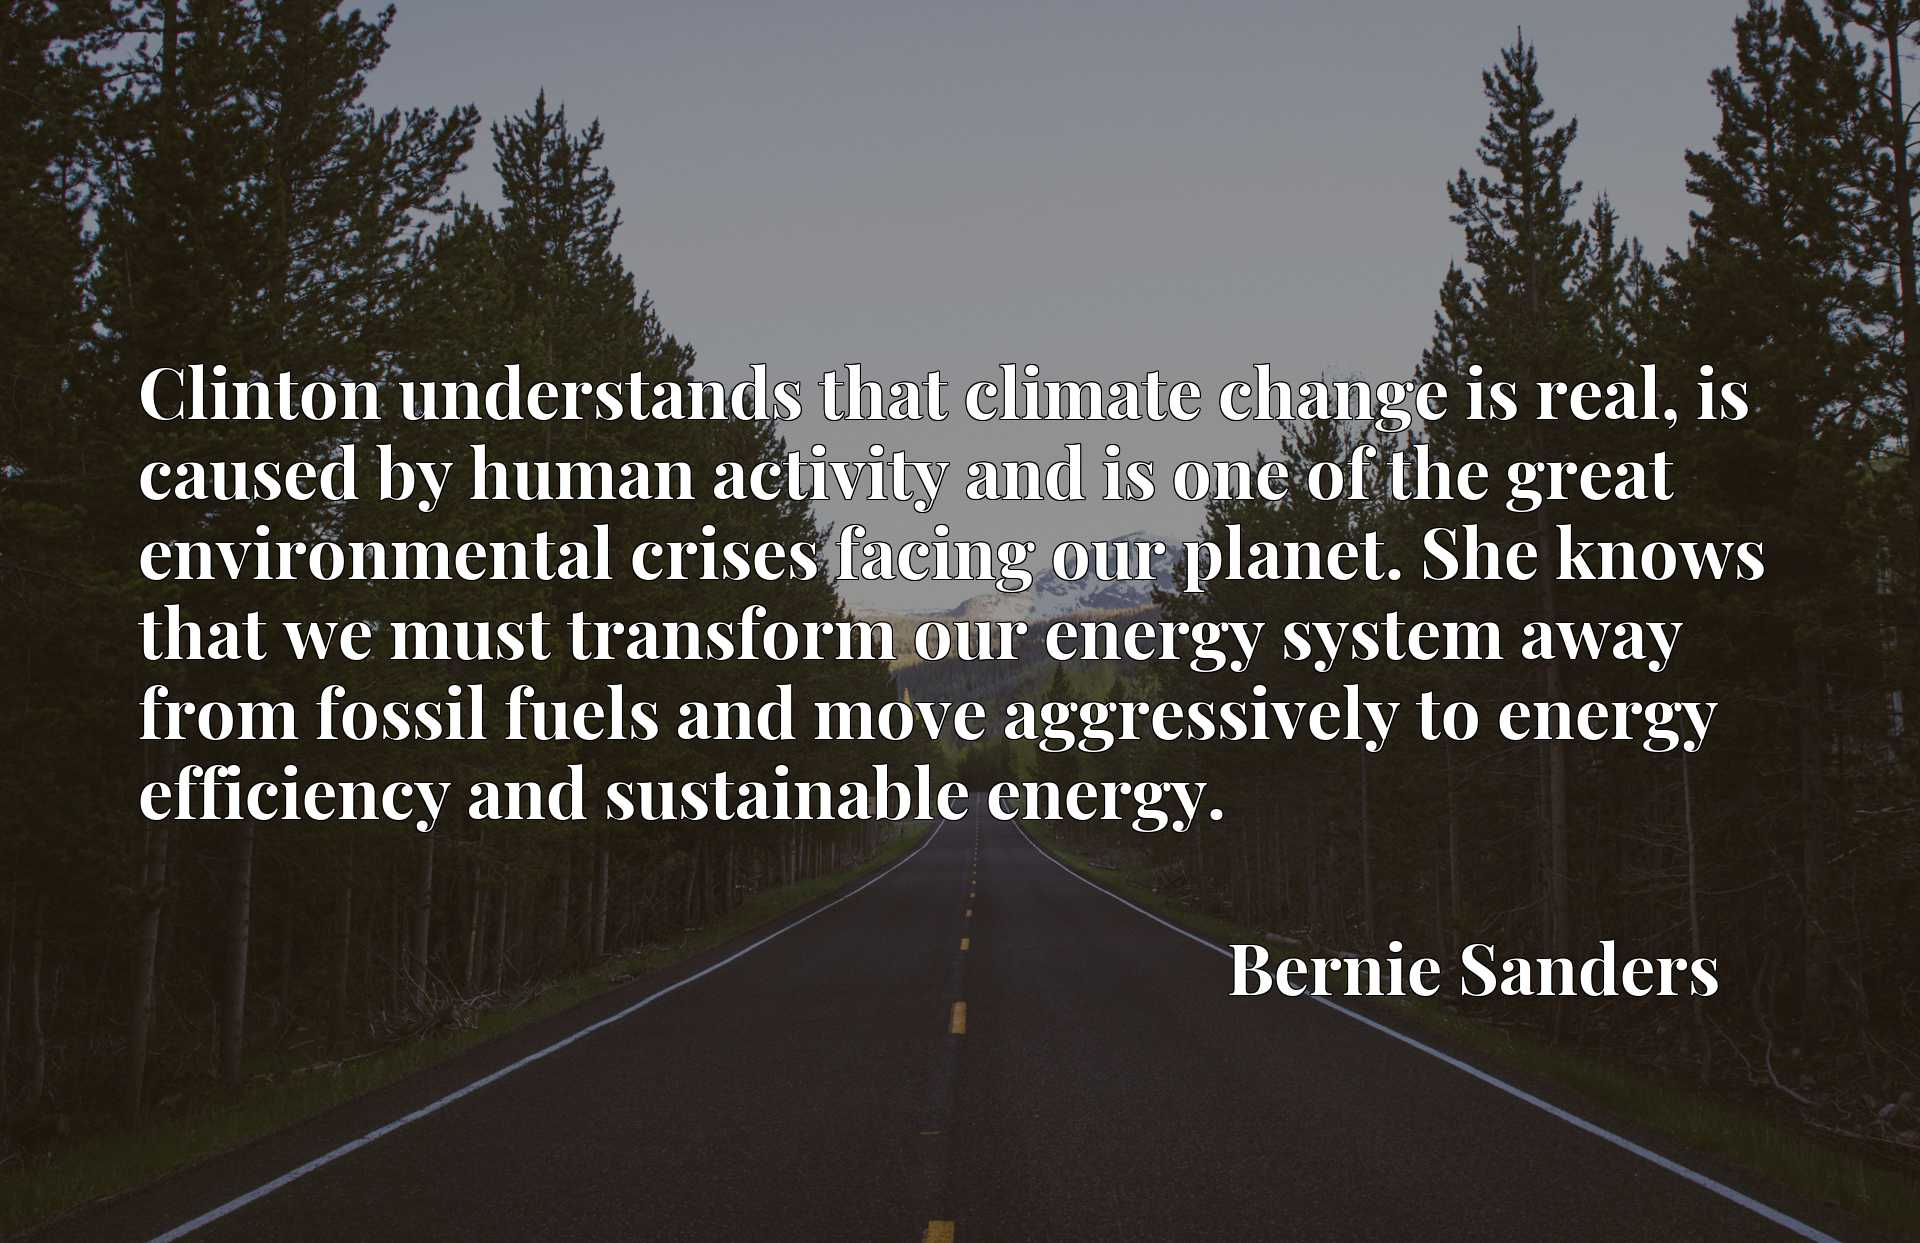 Clinton understands that climate change is real, is caused by human activity and is one of the great environmental crises facing our planet. She knows that we must transform our energy system away from fossil fuels and move aggressively to energy efficiency and sustainable energy.